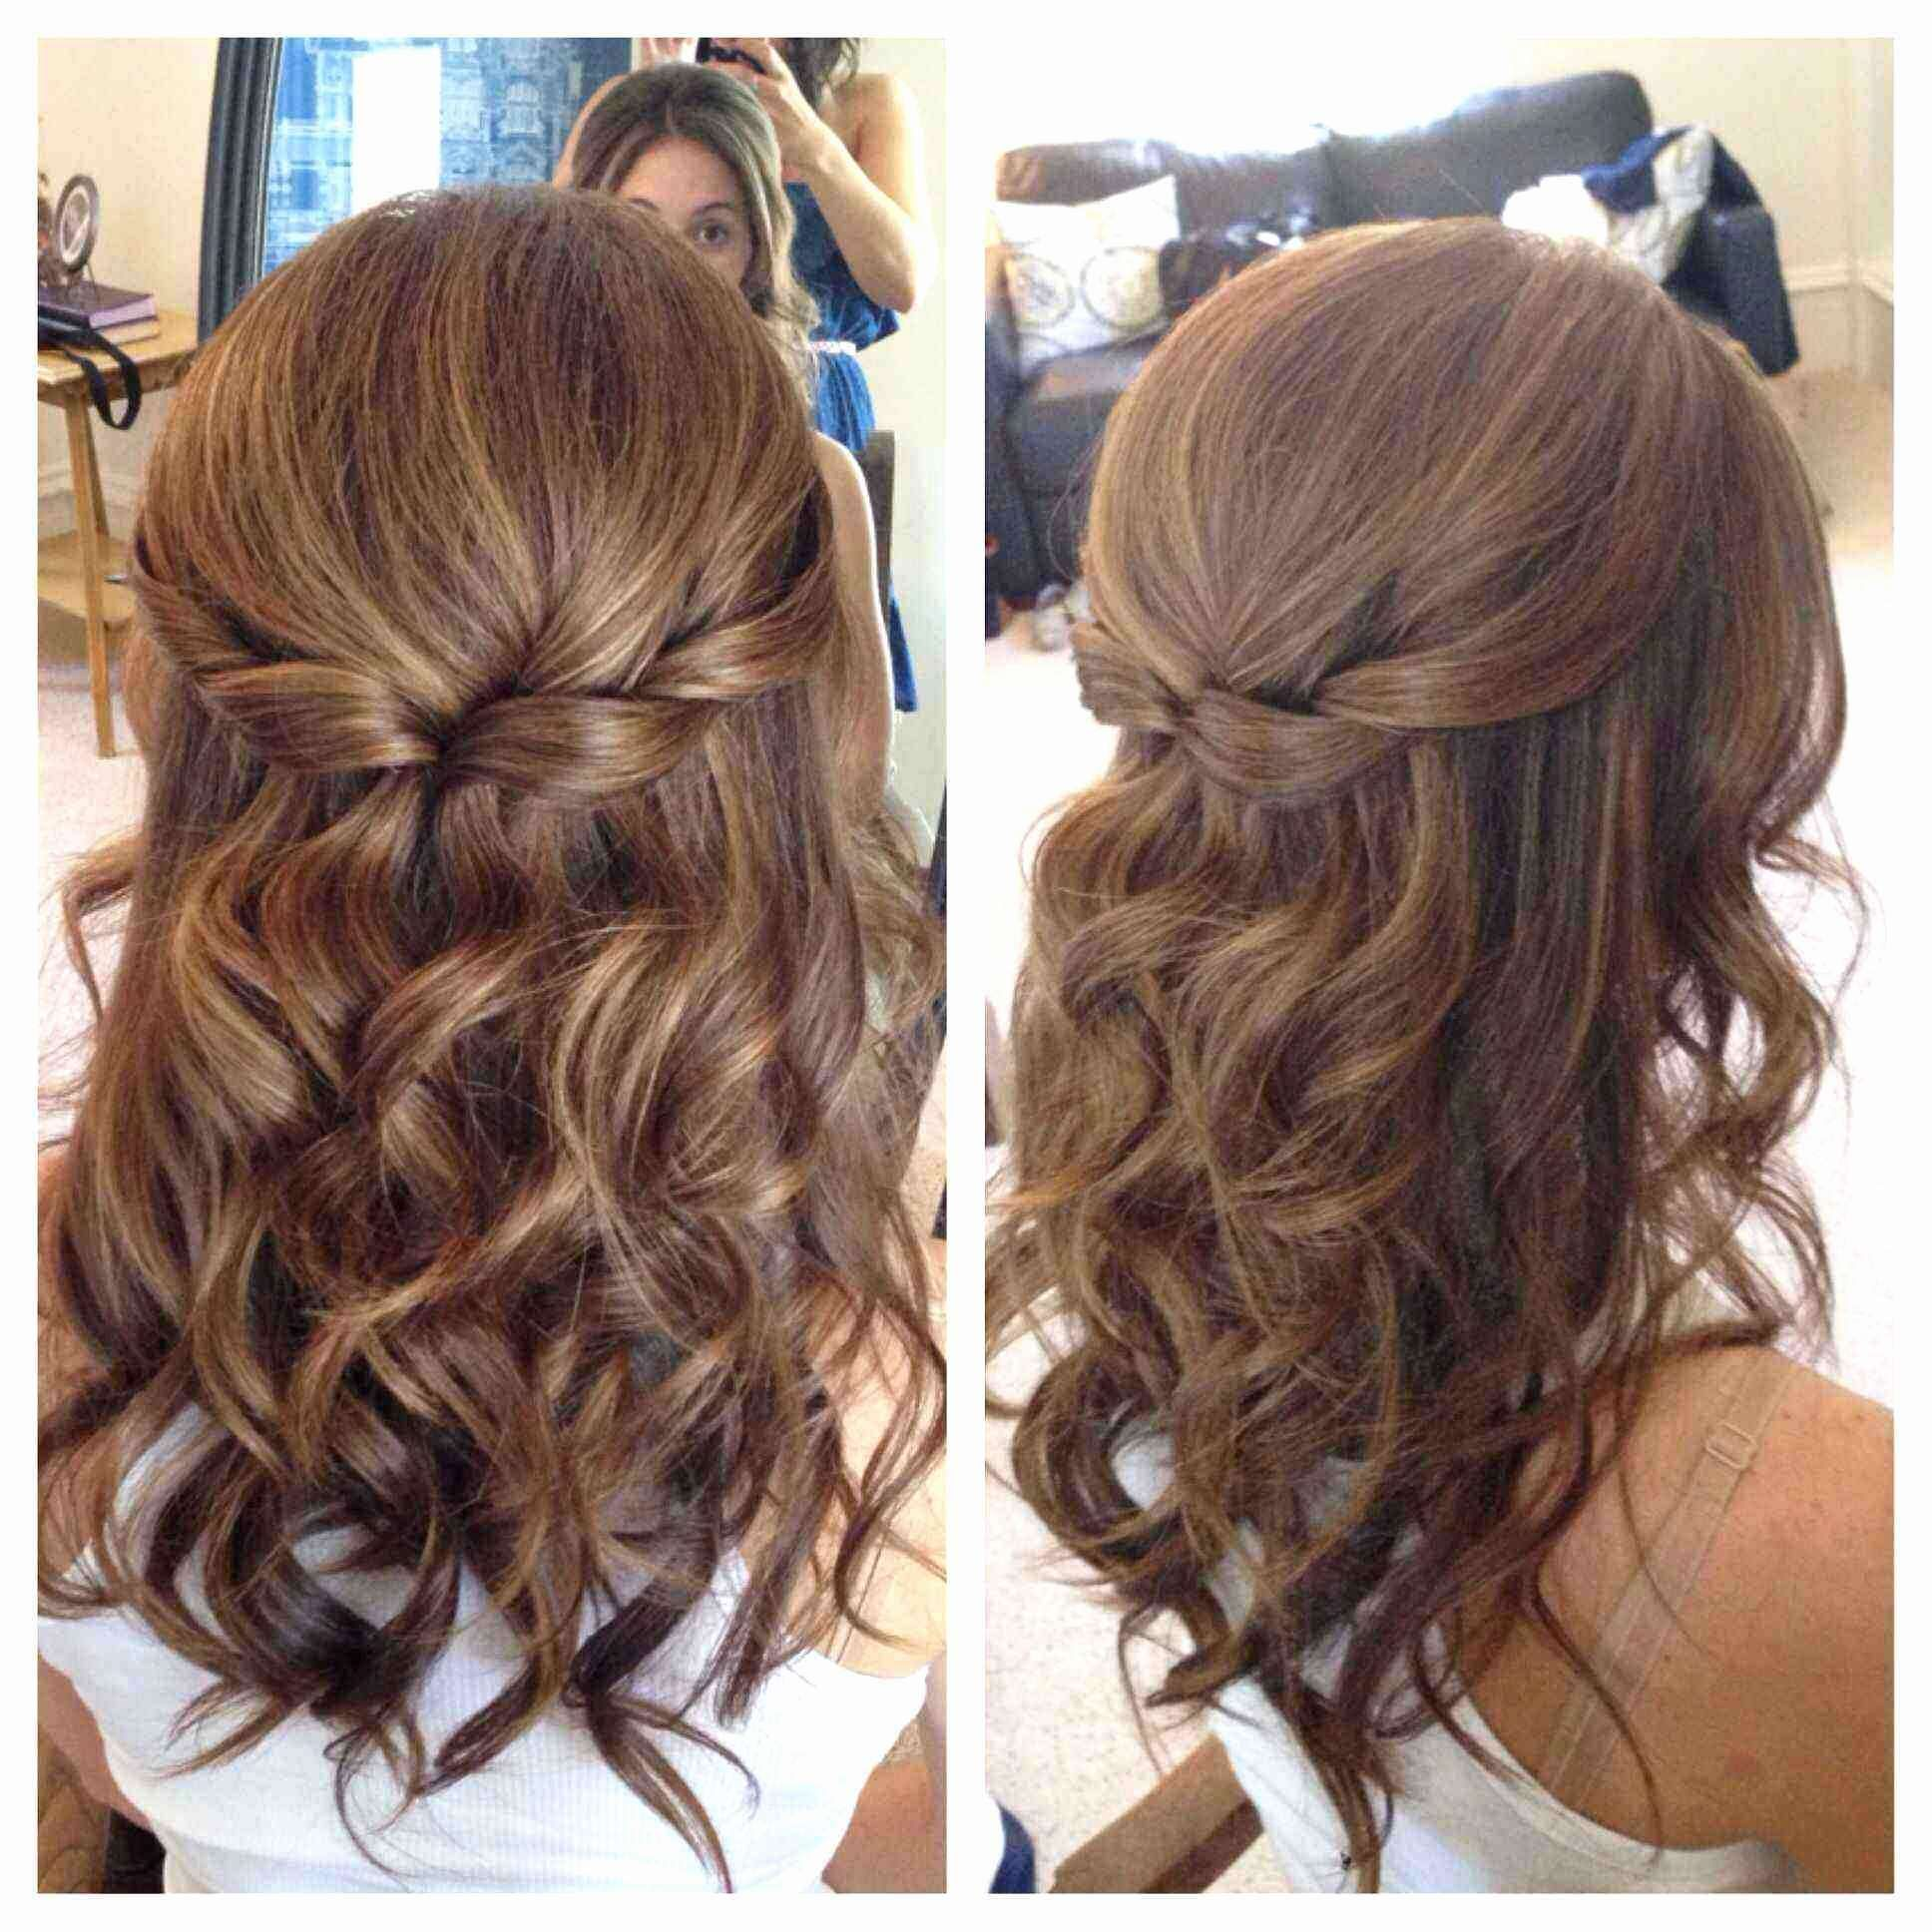 Half Up Half Down Hairstyles For Straight Hair: Half Up Half Down Hairstyles On Straight Hair Lovely